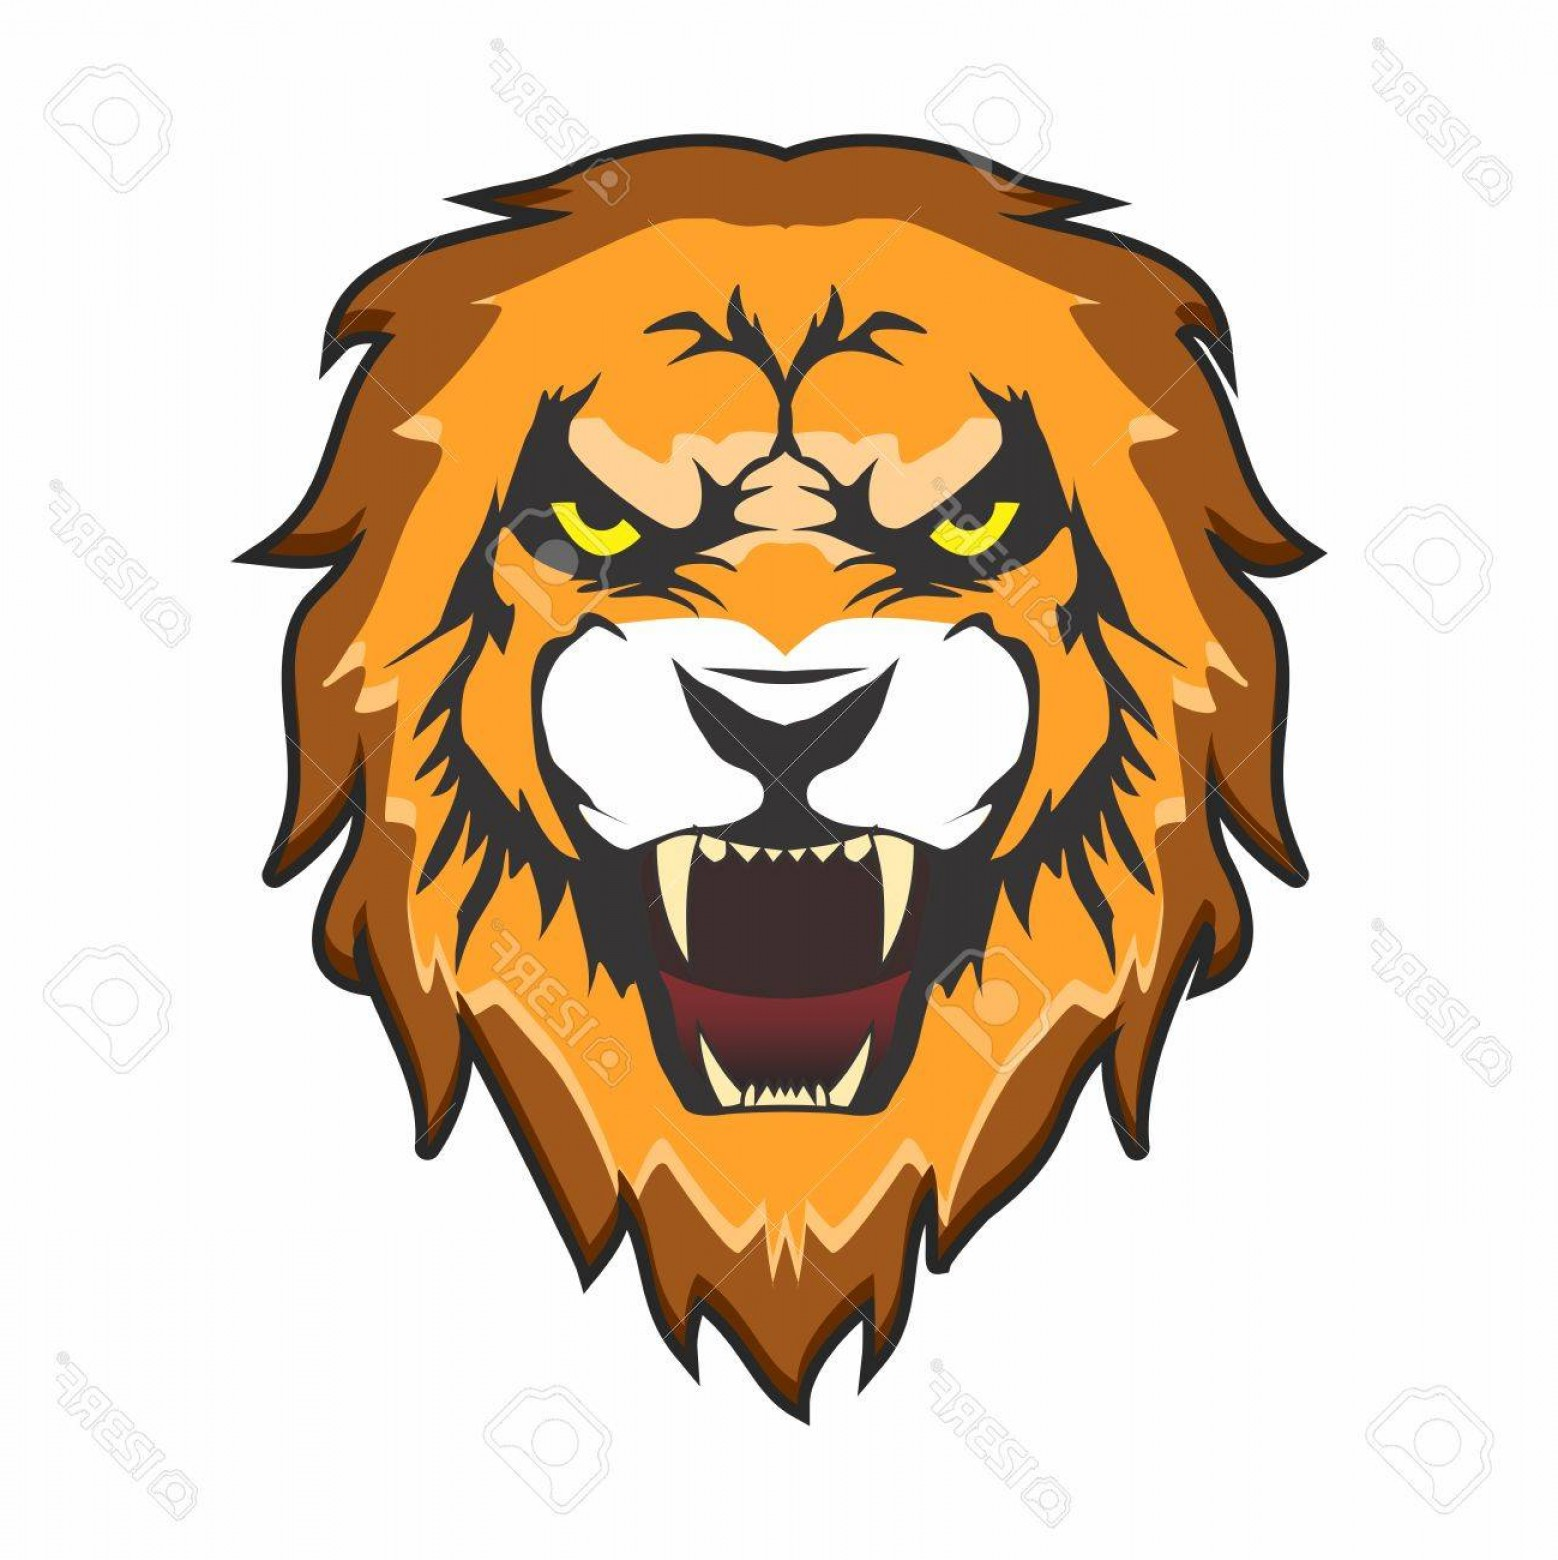 Malee Cat Head Silhouette Vector: Photostock Vector Vector Head Of Aggressive Male Lion With Open Mouth And Tooth